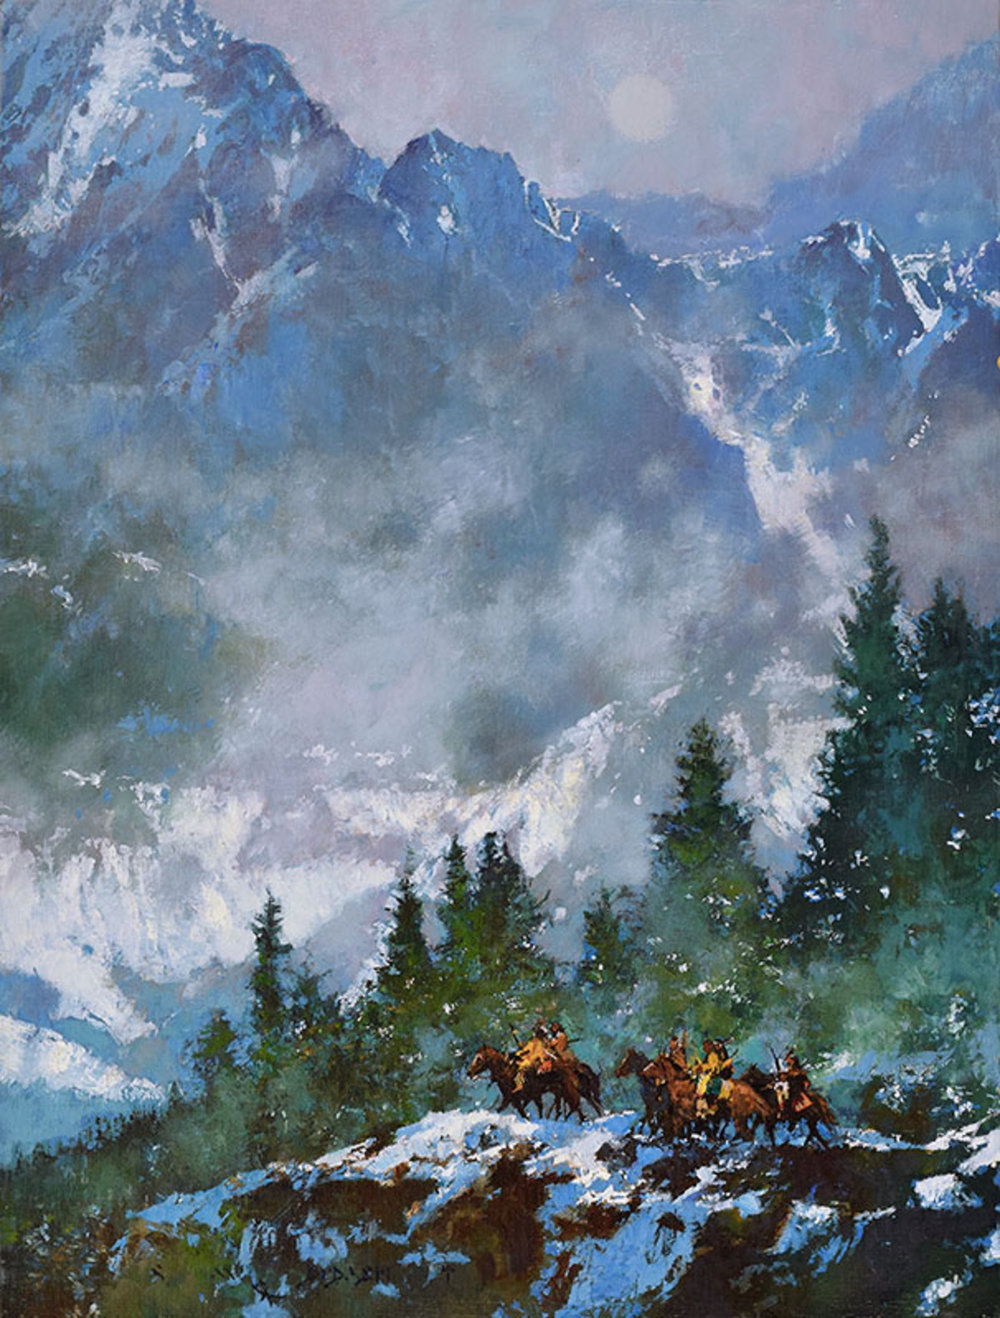 """*****SOLD*****    """"MIST ON BLUE MOUNTAIN"""" - oil on linen - 24""""h x 18""""w Sold at (Skull Society of Artists Booth)  THE EXHIBITION & SALE TO BENEFIT THE C. M. RUSSELL MUSEUM Great Falls, MT March 16-18, 2017"""